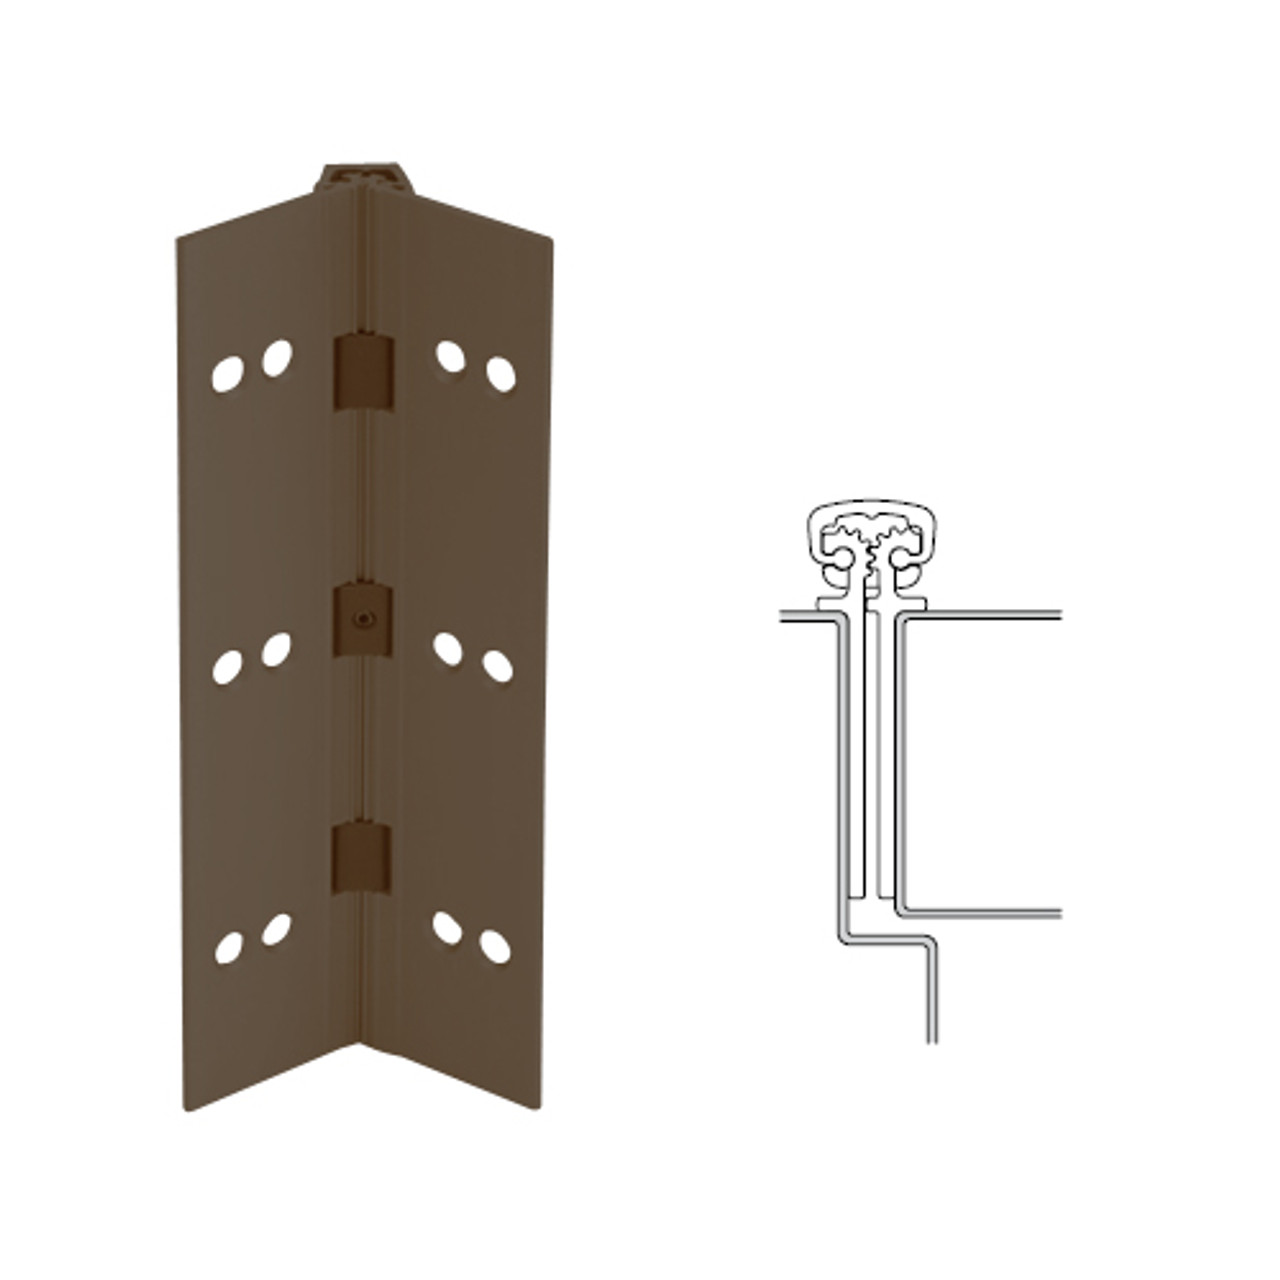 027XY-313AN-85-WD IVES Full Mortise Continuous Geared Hinges with Wood Screws in Dark Bronze Anodized